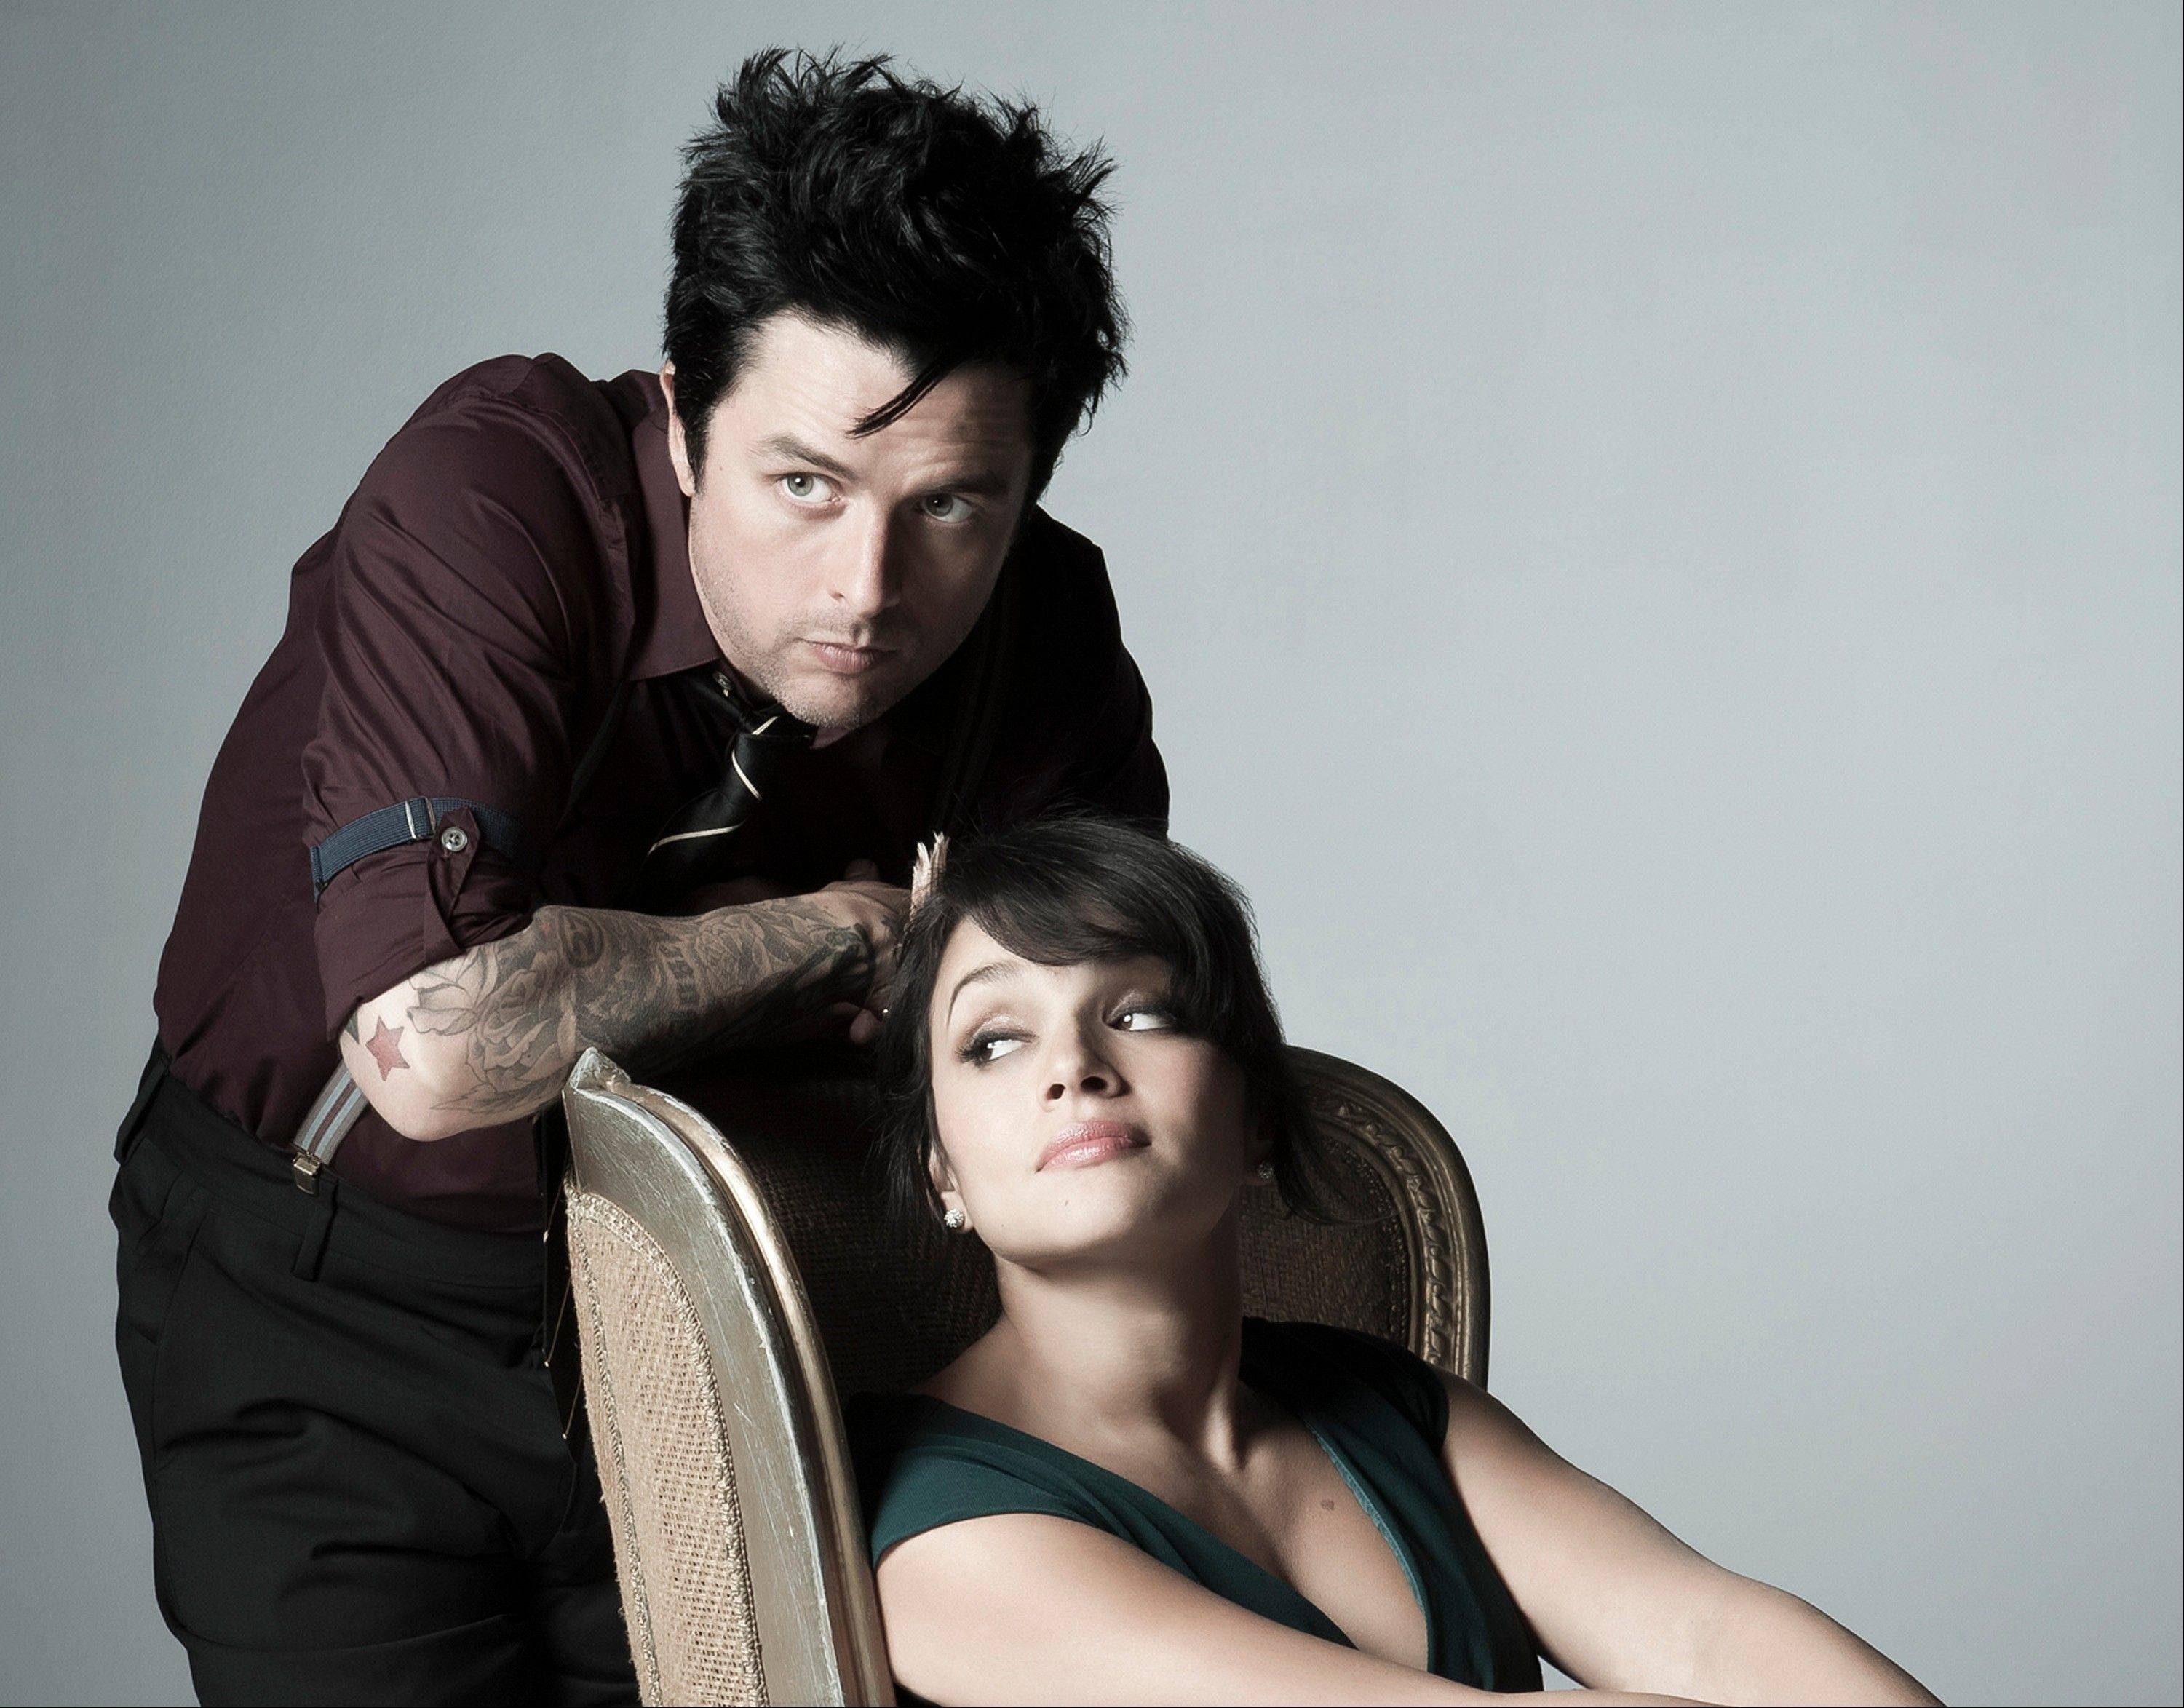 Billie Joe Armstrong and Norah Jones have teamed up for an Everly Brothers tribute, �Foreverly,� released this week.